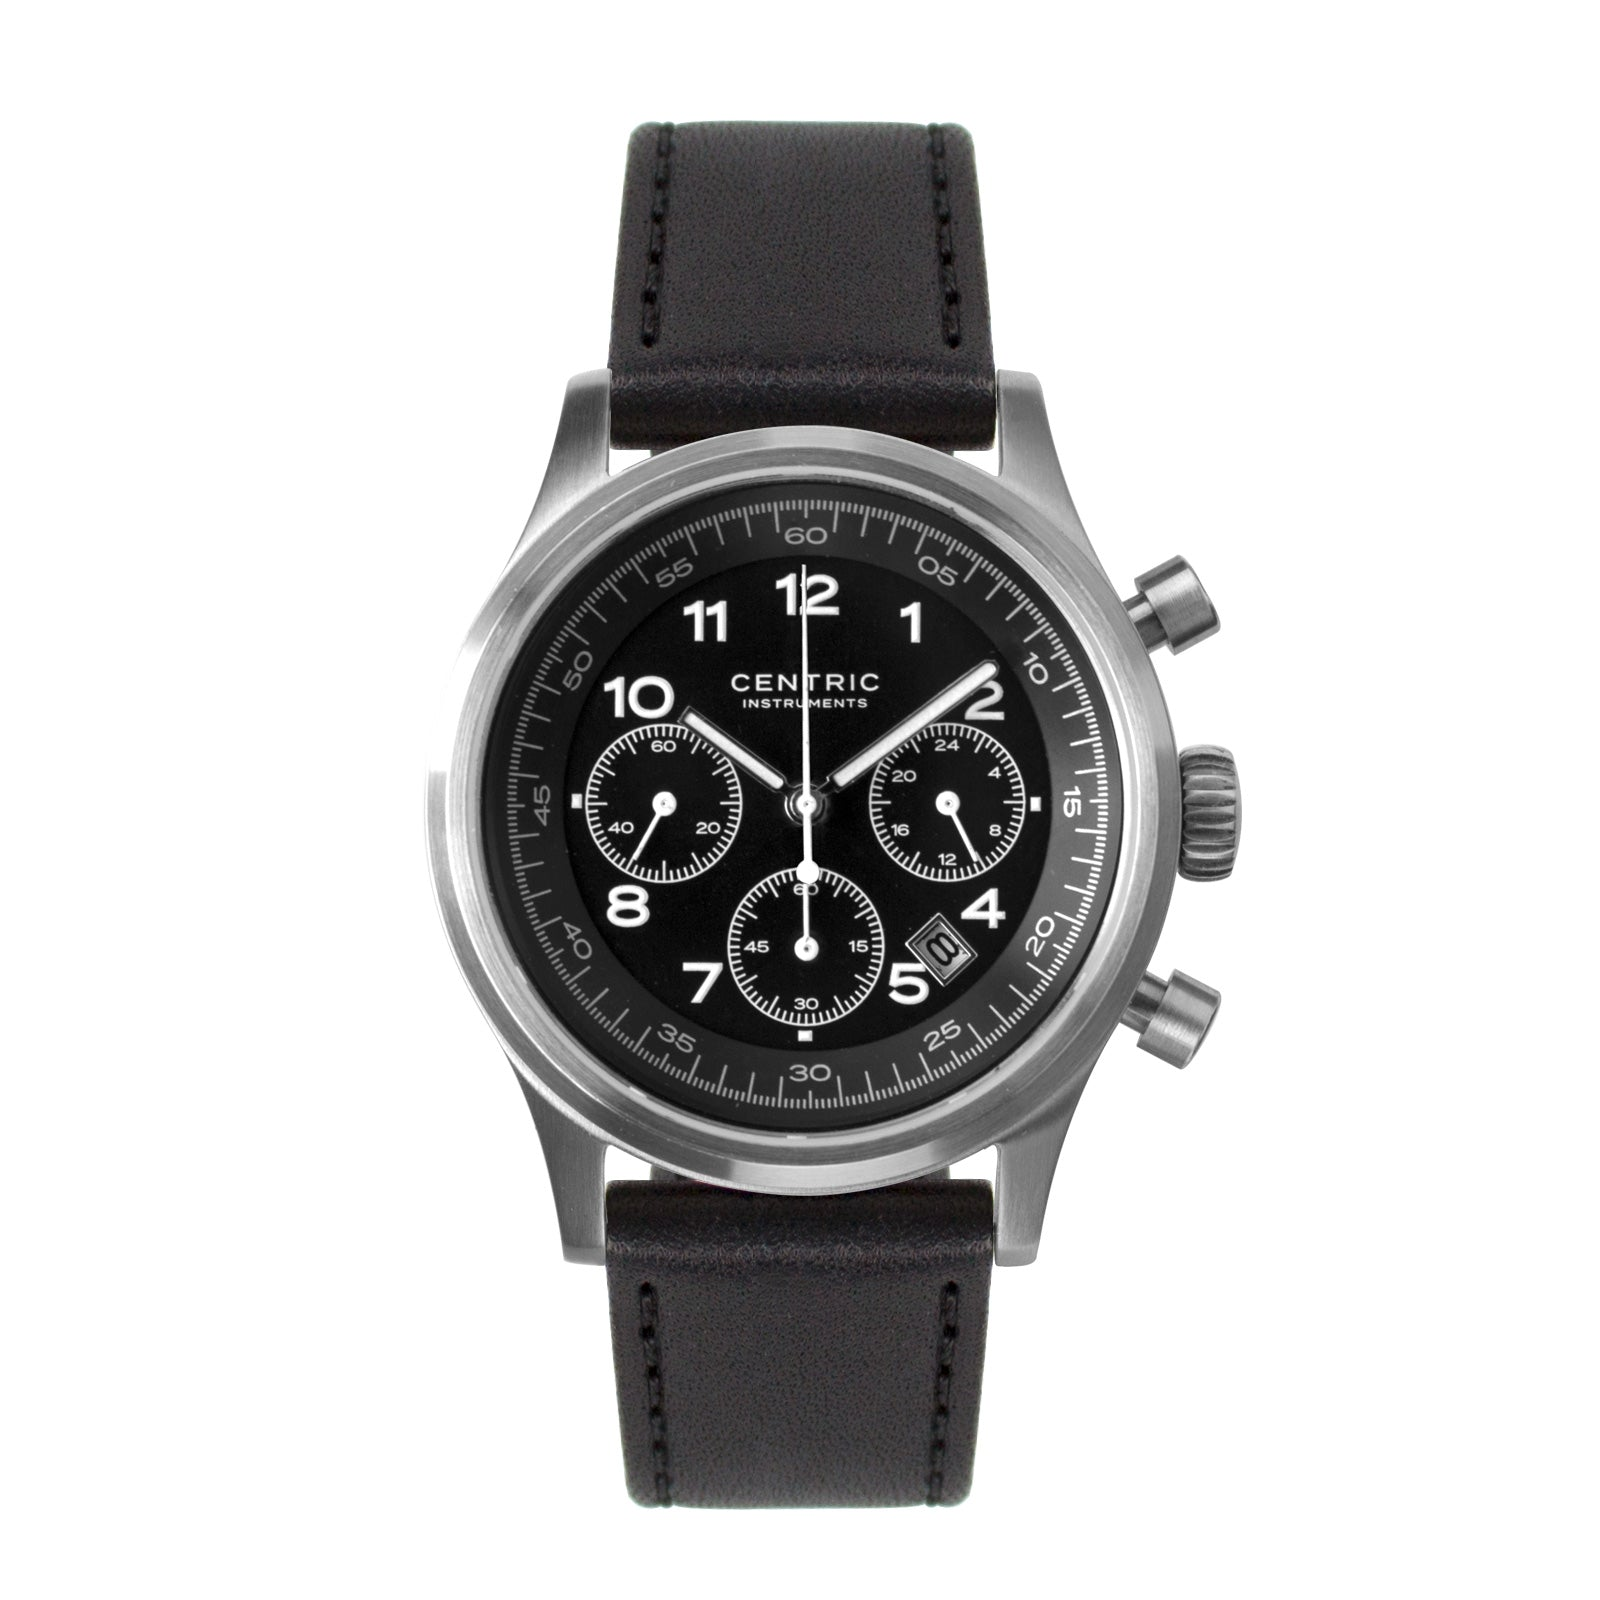 Pilot Chronograph Classic (Black) - Classic Leather